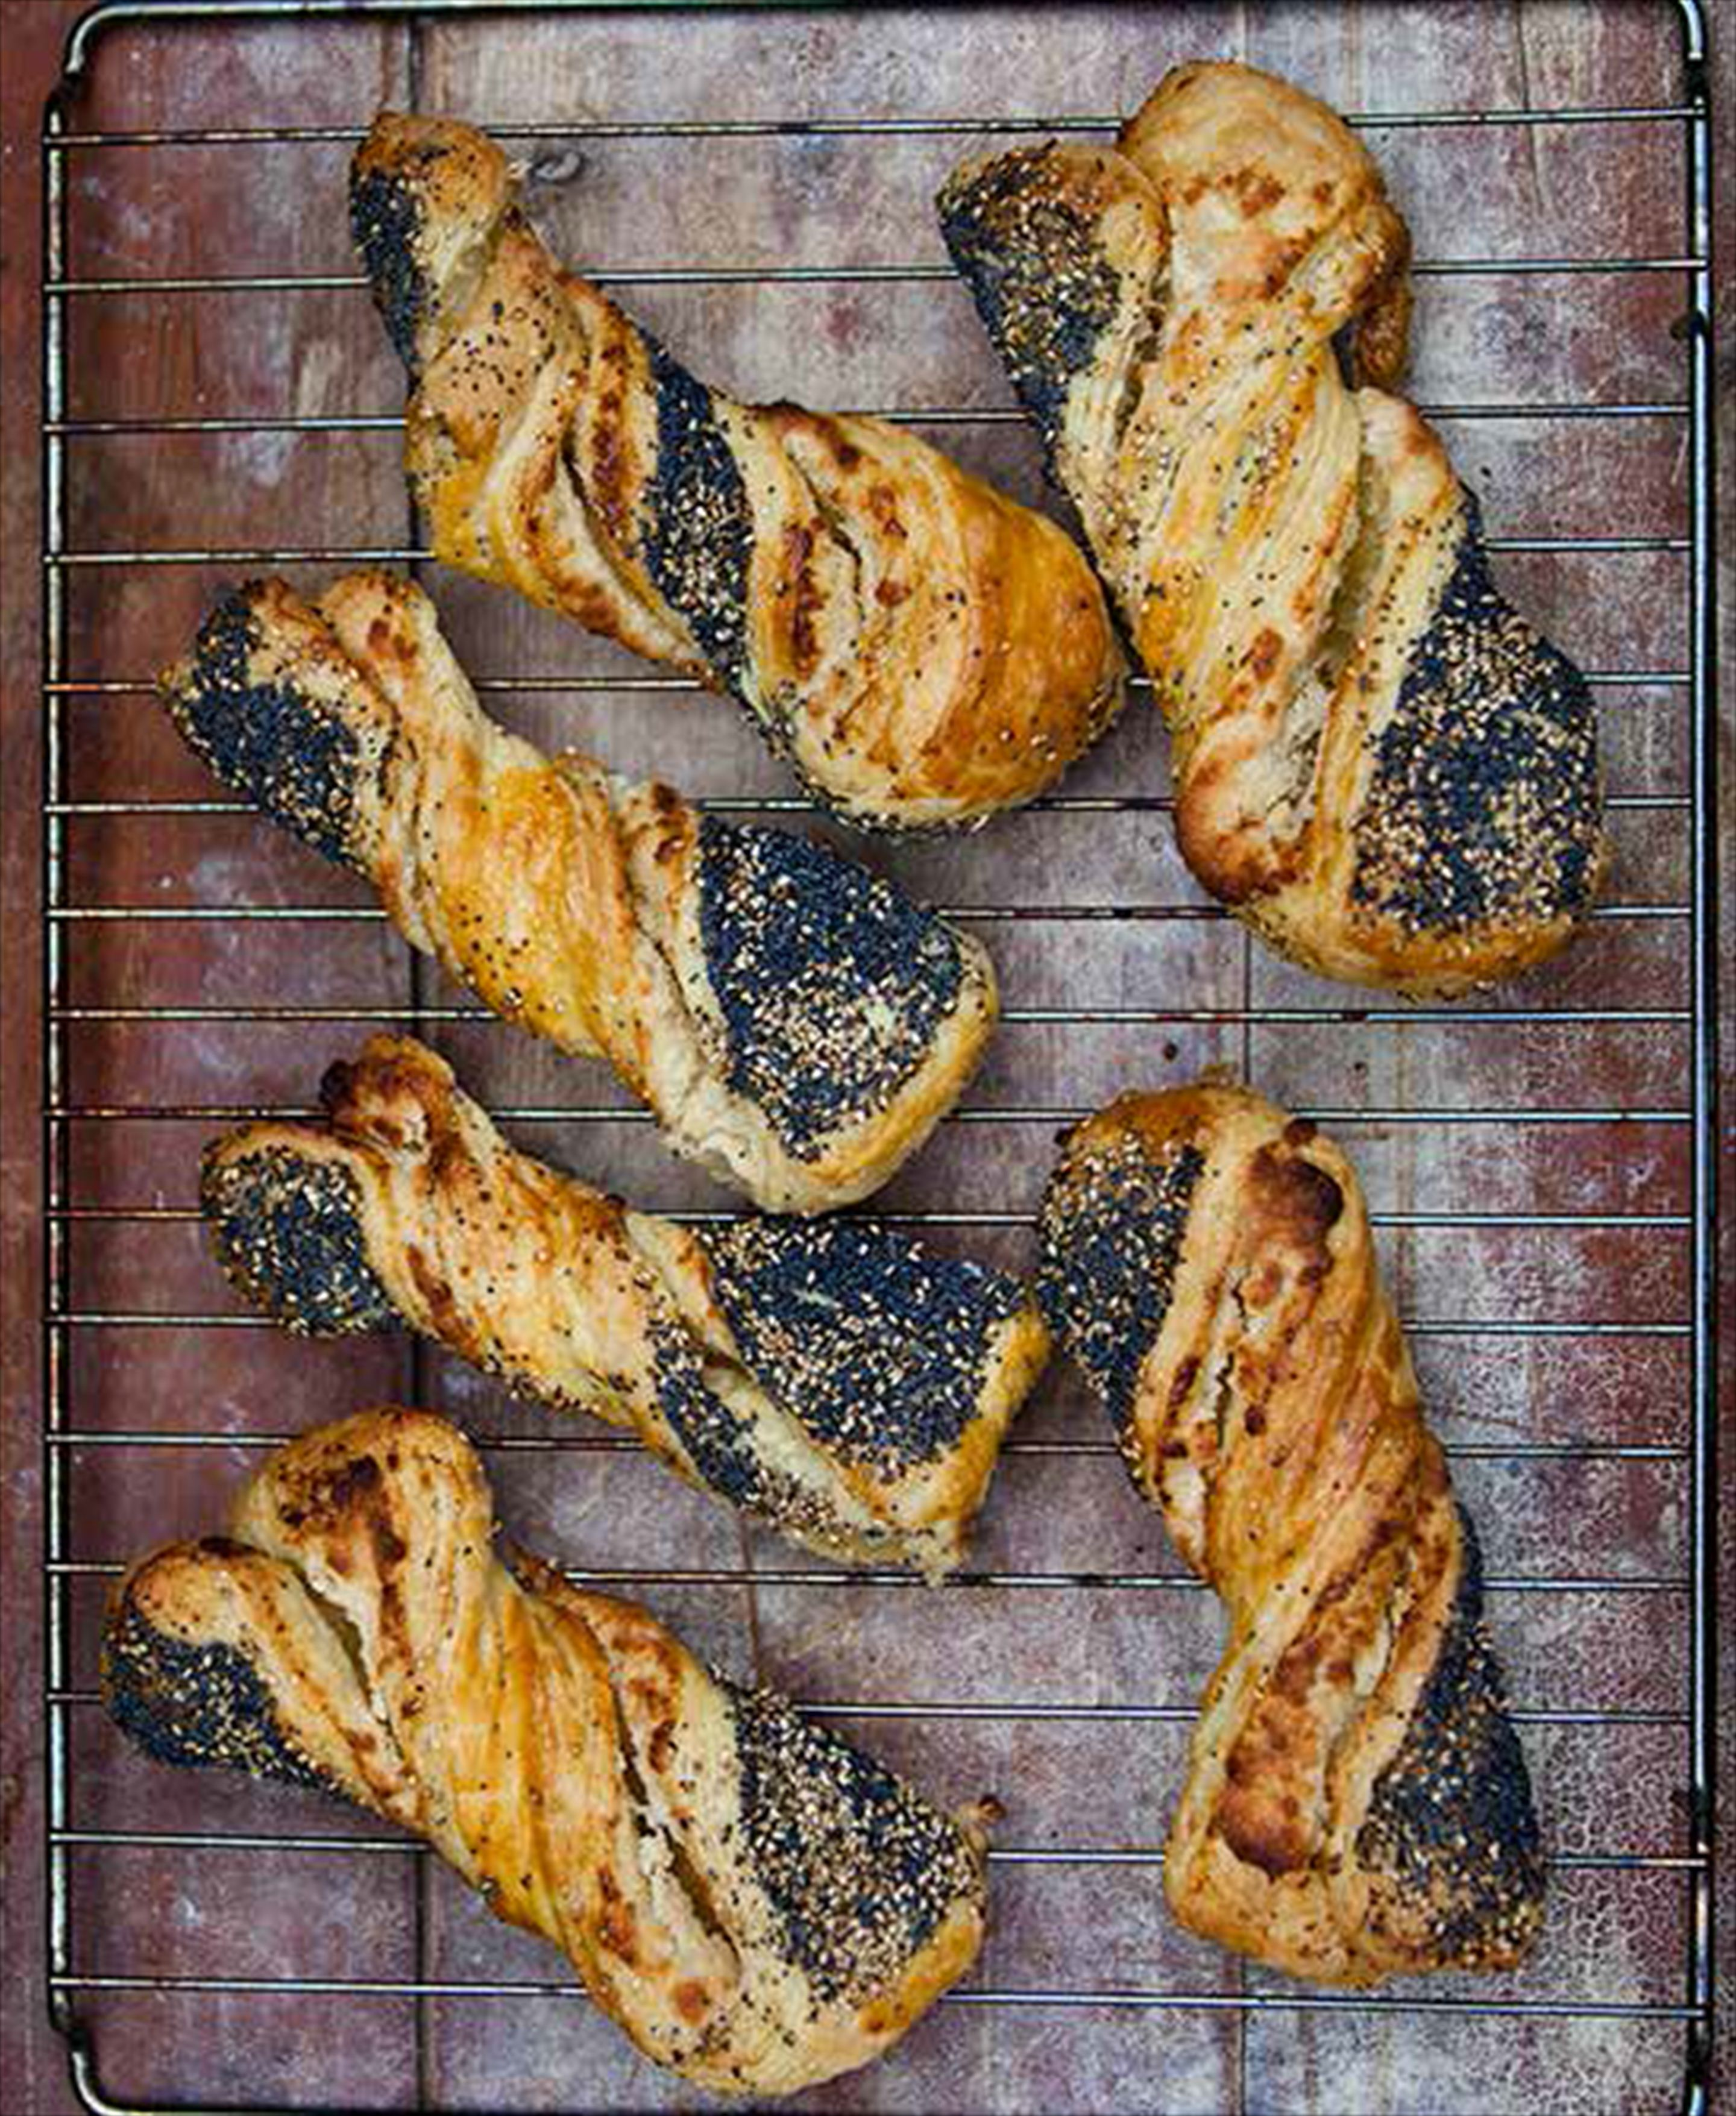 Poppy and sesame danish